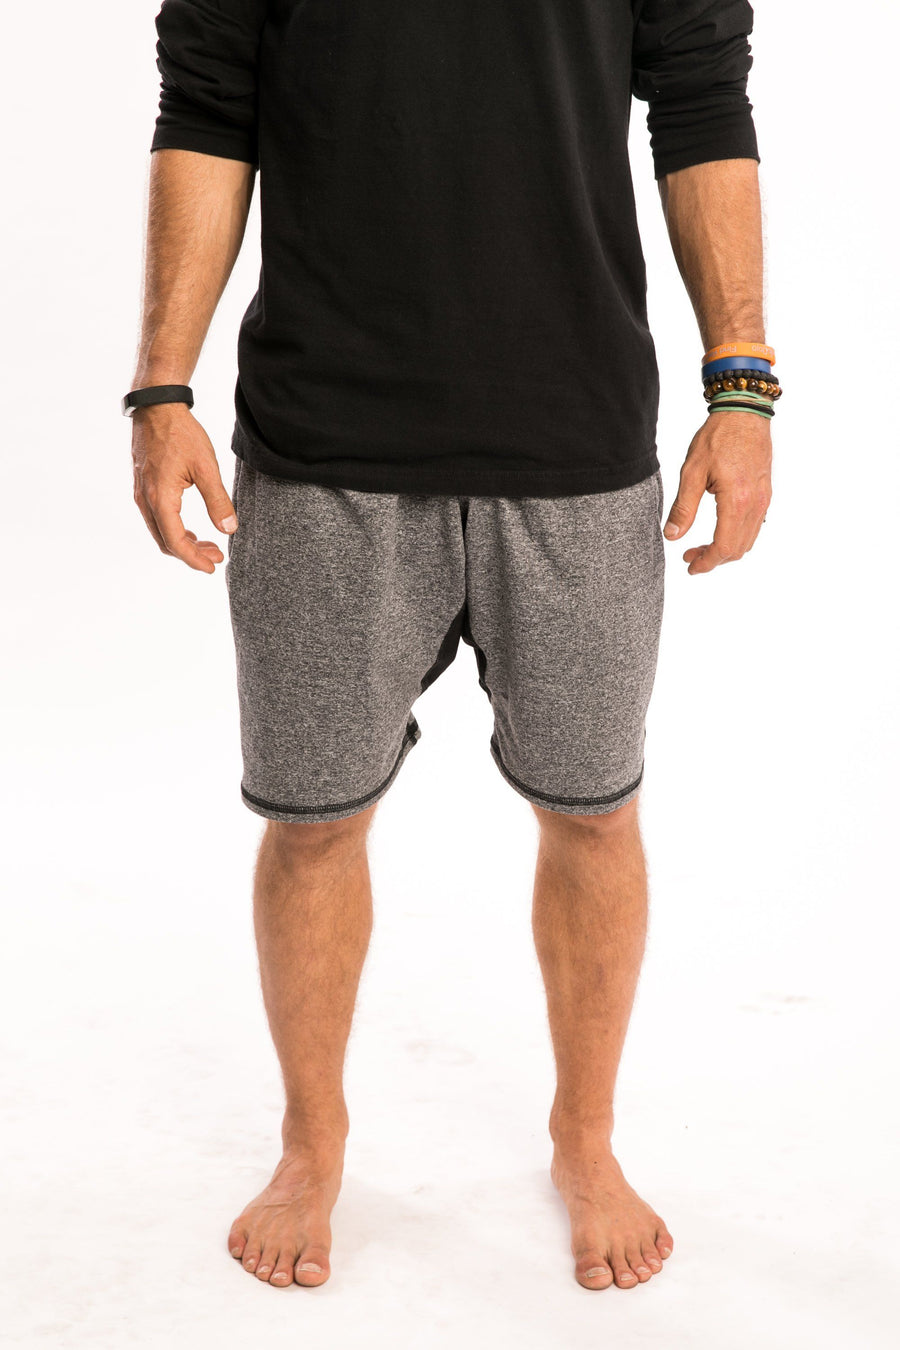 GRAY/BLACK Short-SHORTS-Pi Movement-Pi Movement